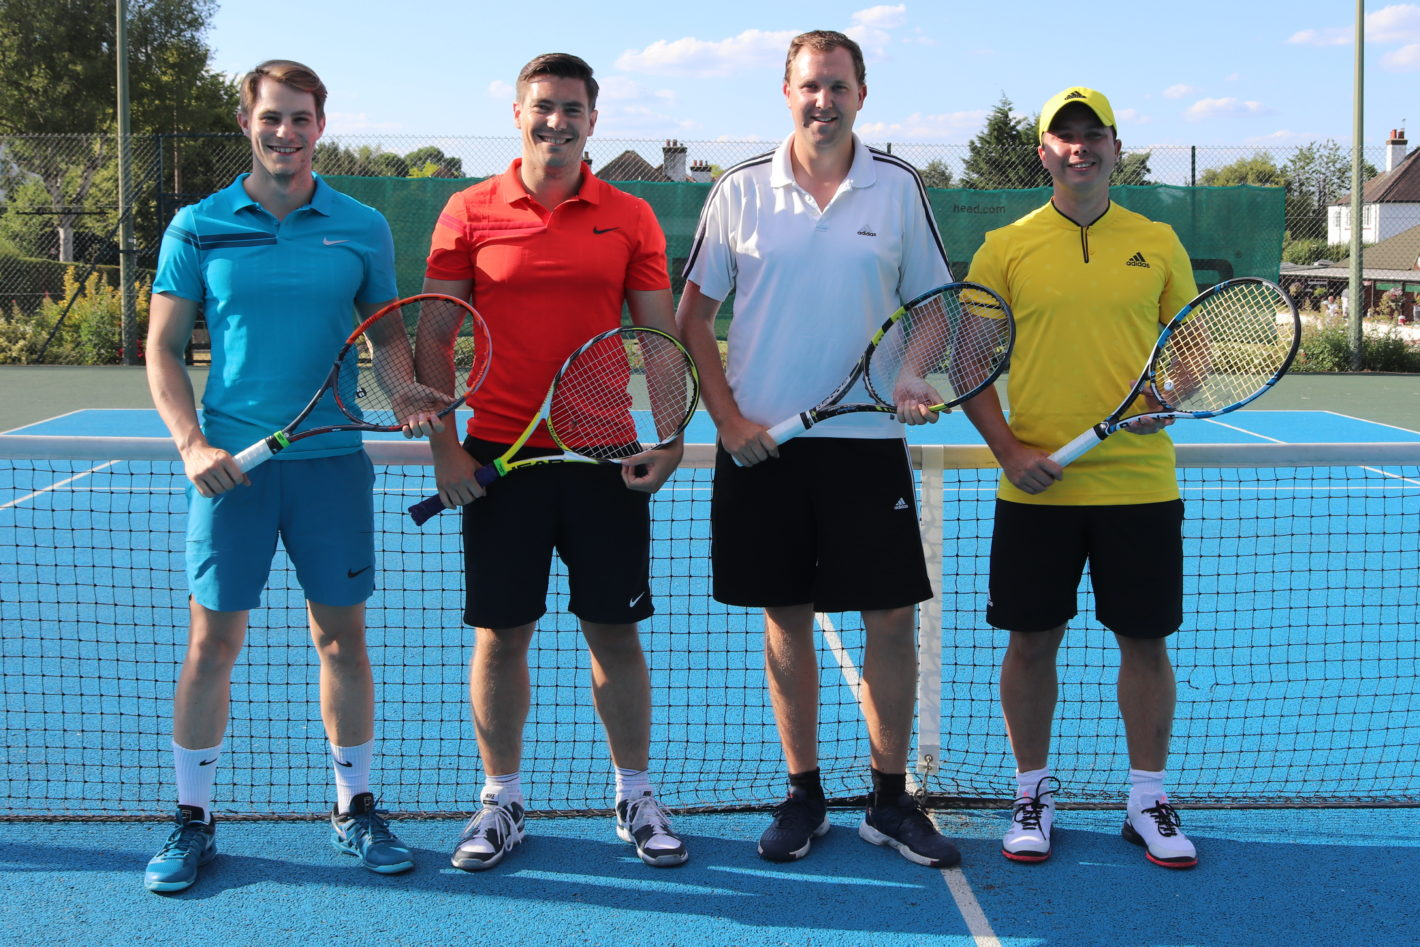 4 tennis players ready for action